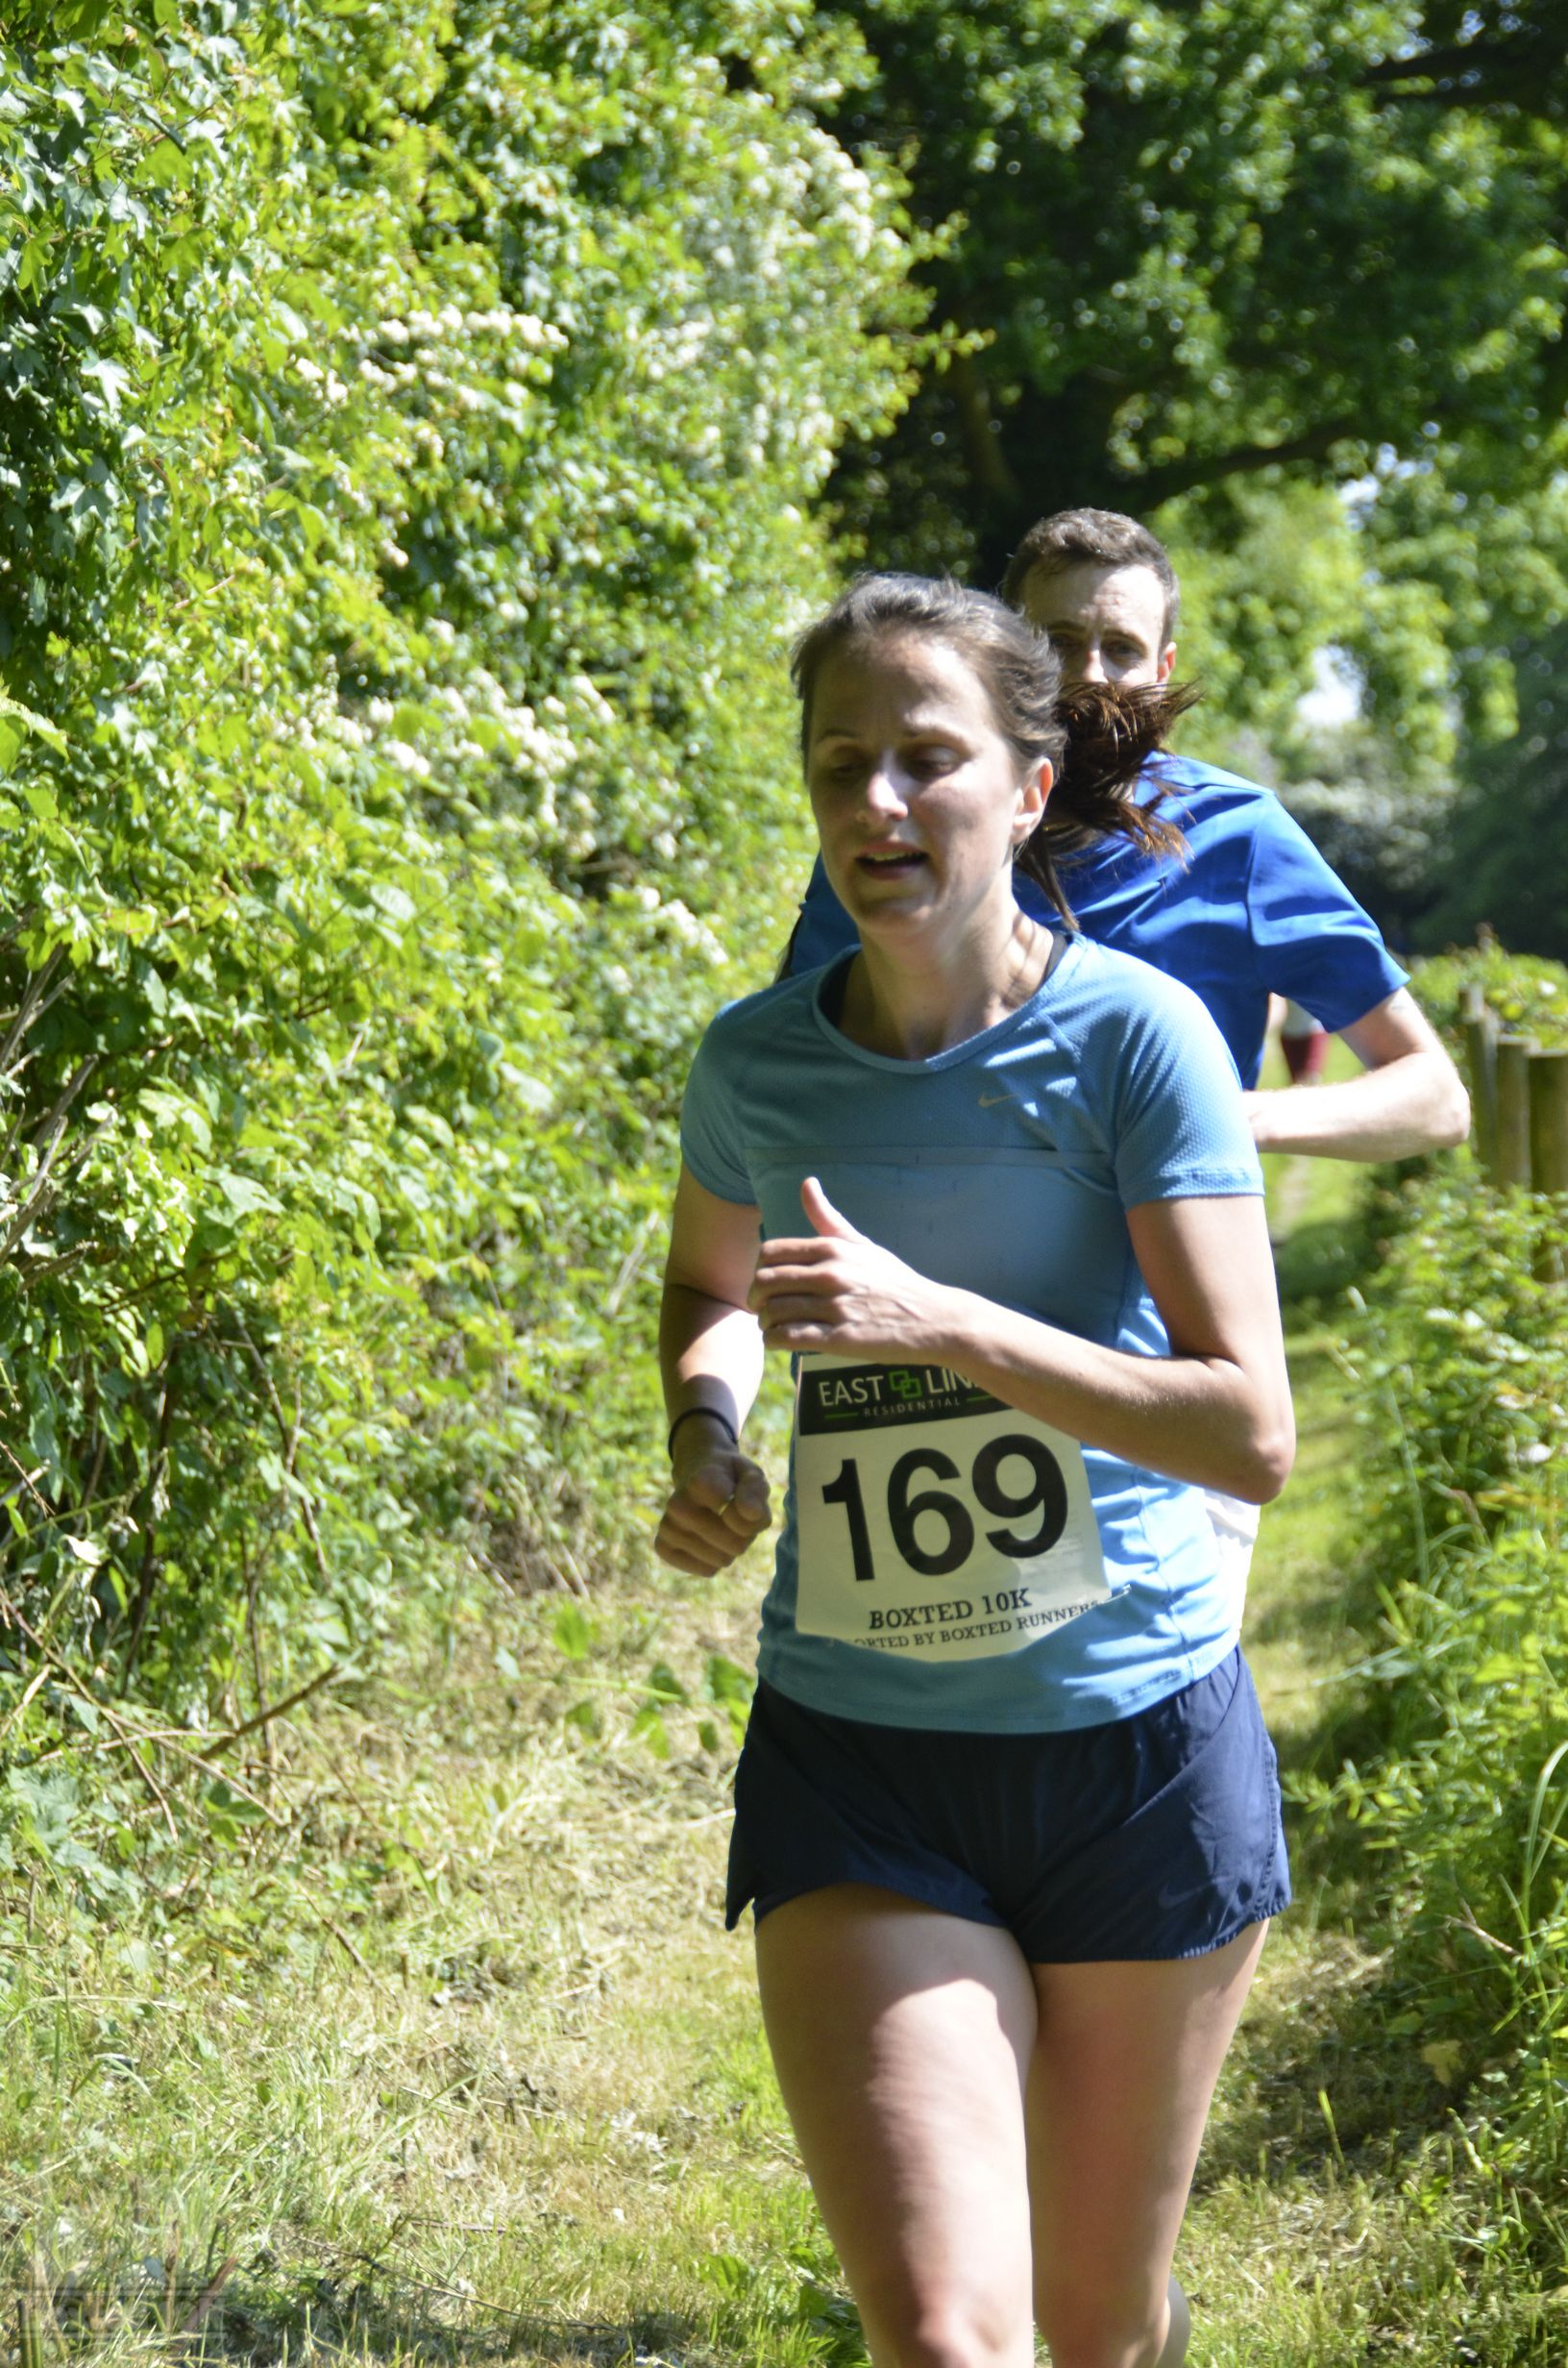 Boxted10k-00195